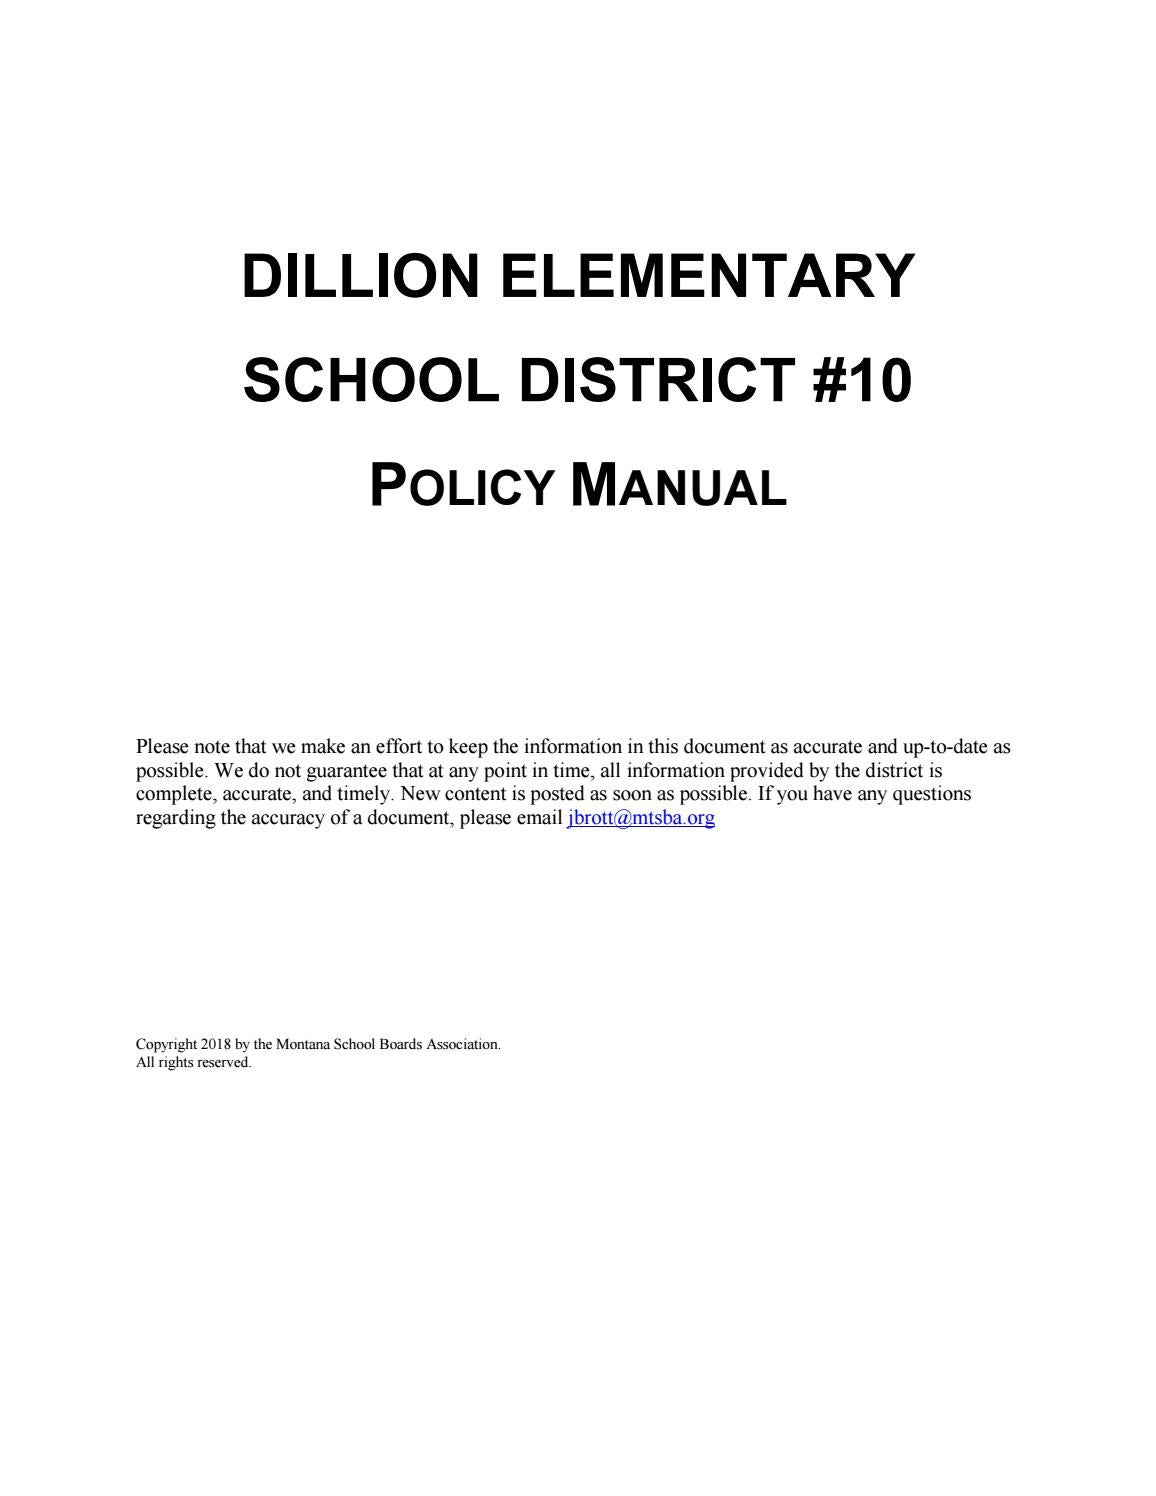 Dillon Elementary School District #10 Policy Manual by Montana School  Boards Association - issuu